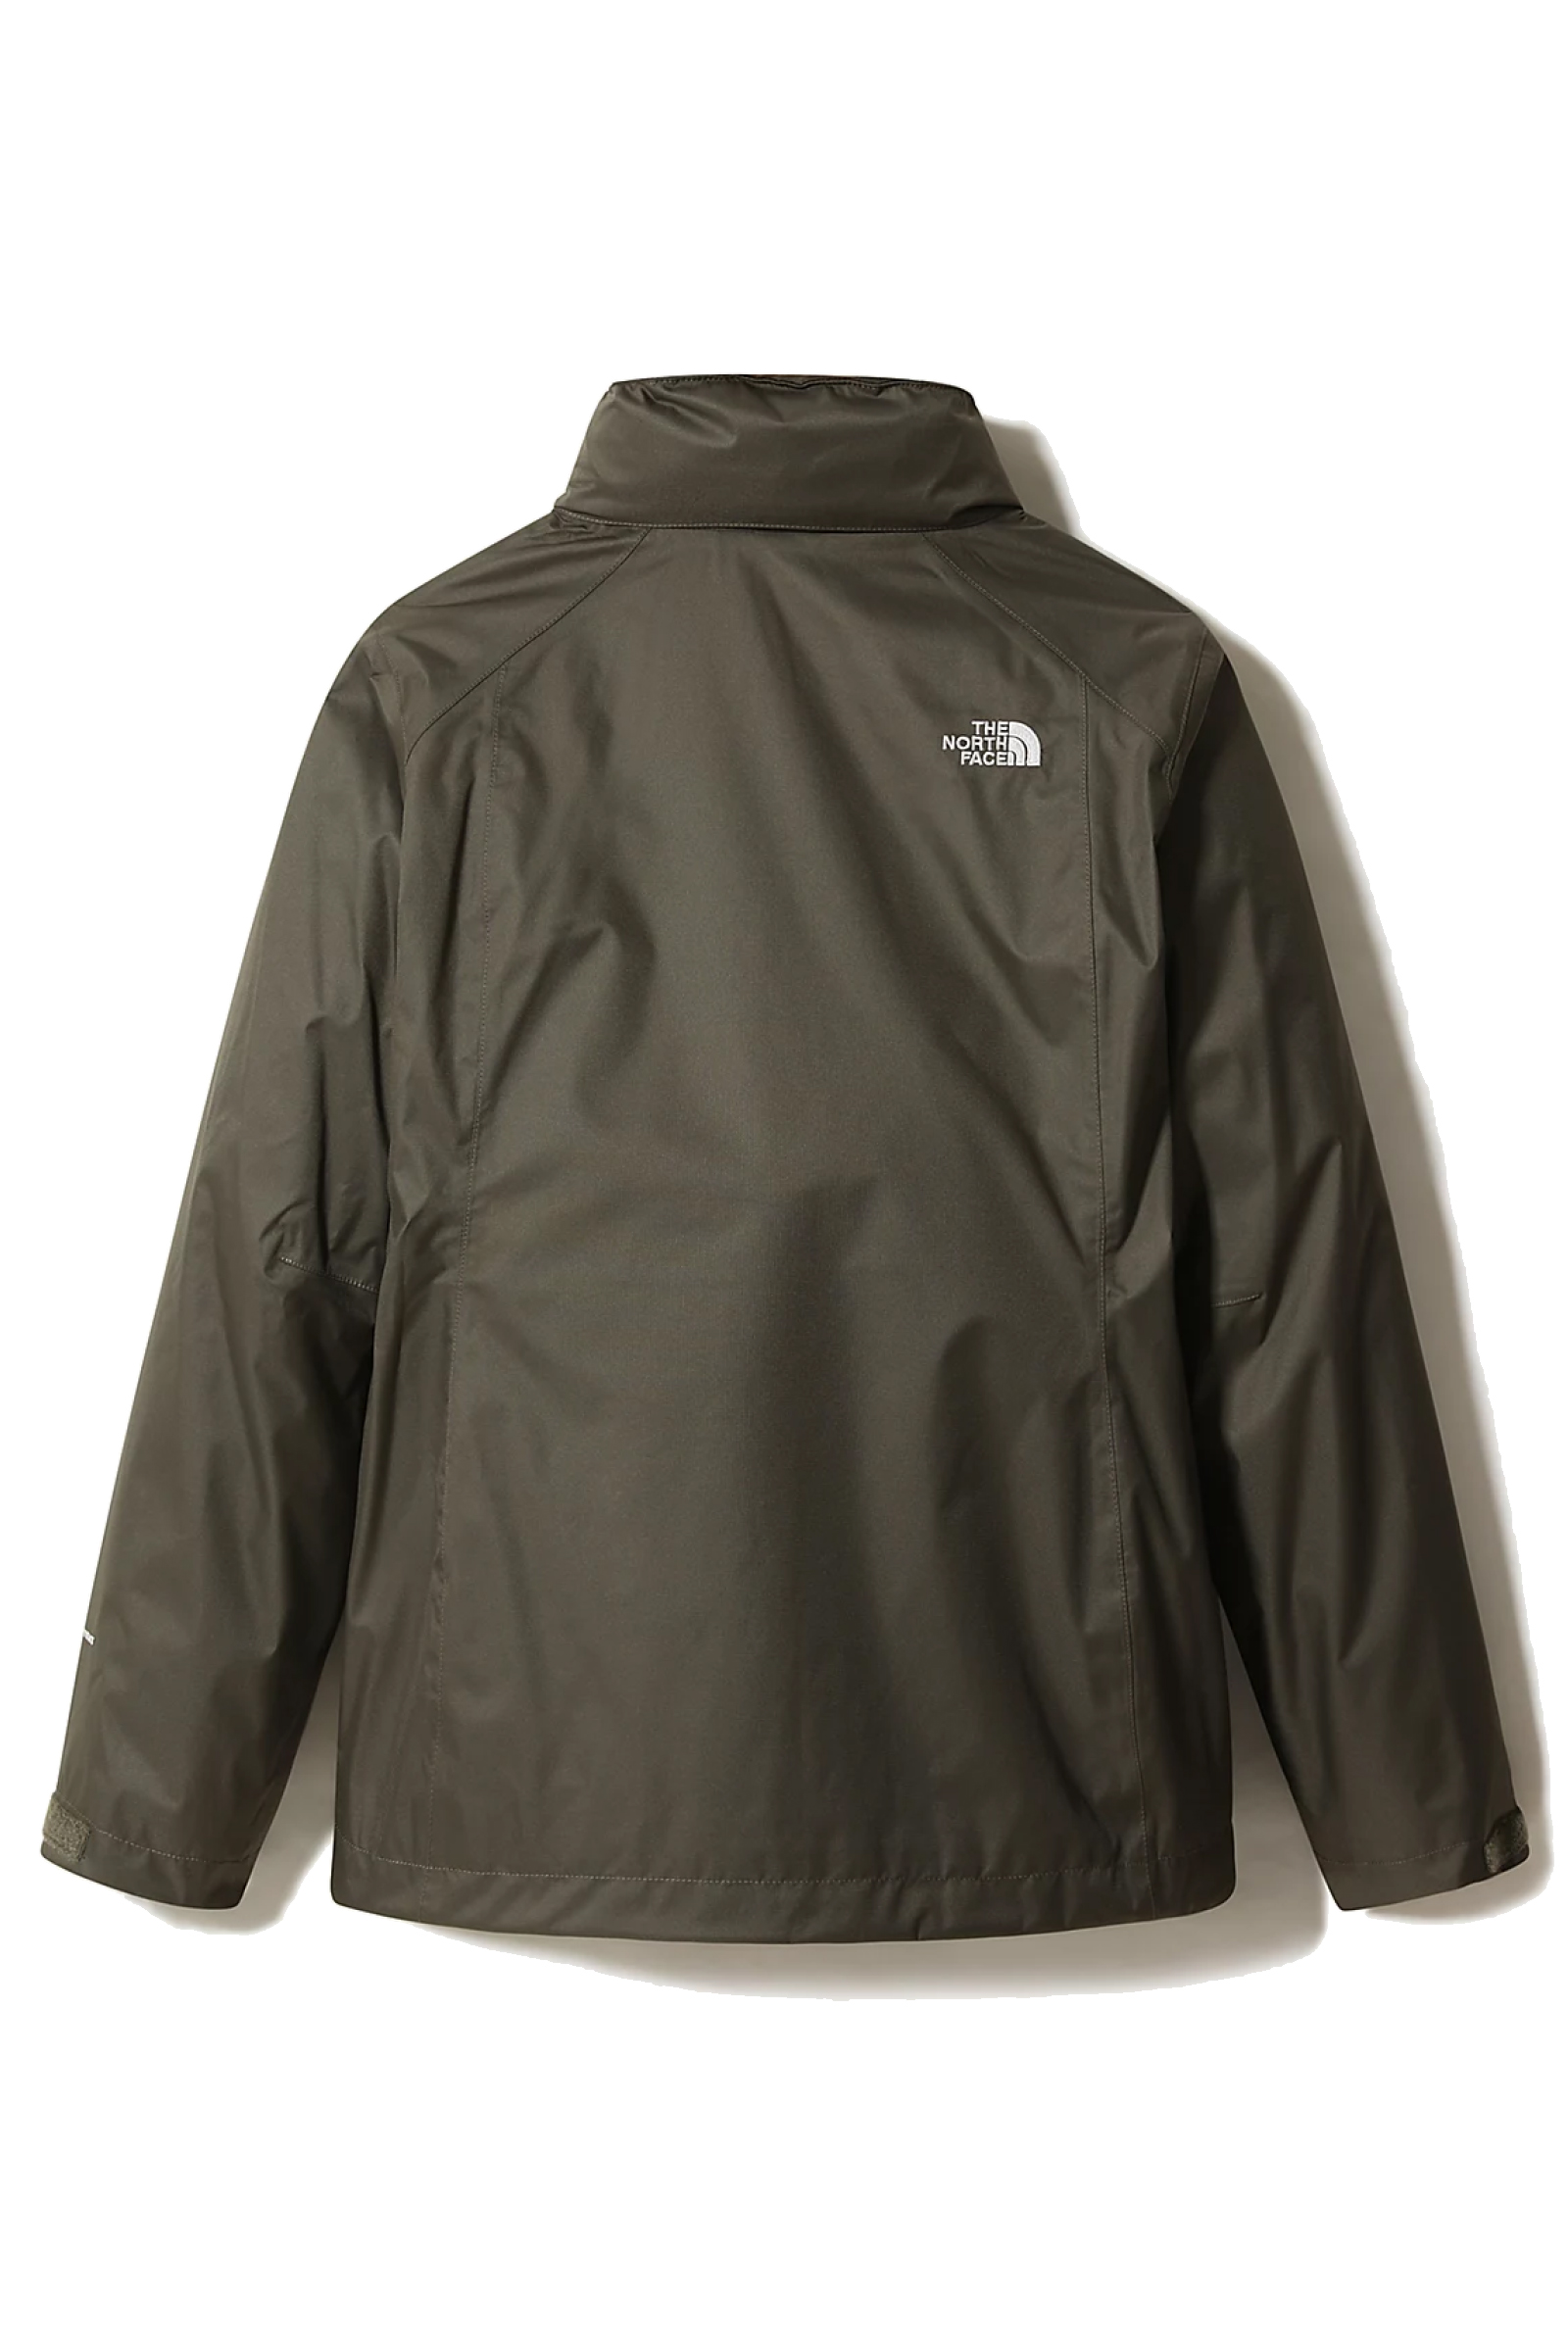 THE NORTH FACE Woman Jacket Model Evolve II Triclimate® THE NORTH FACE | Jacket | CG5621L